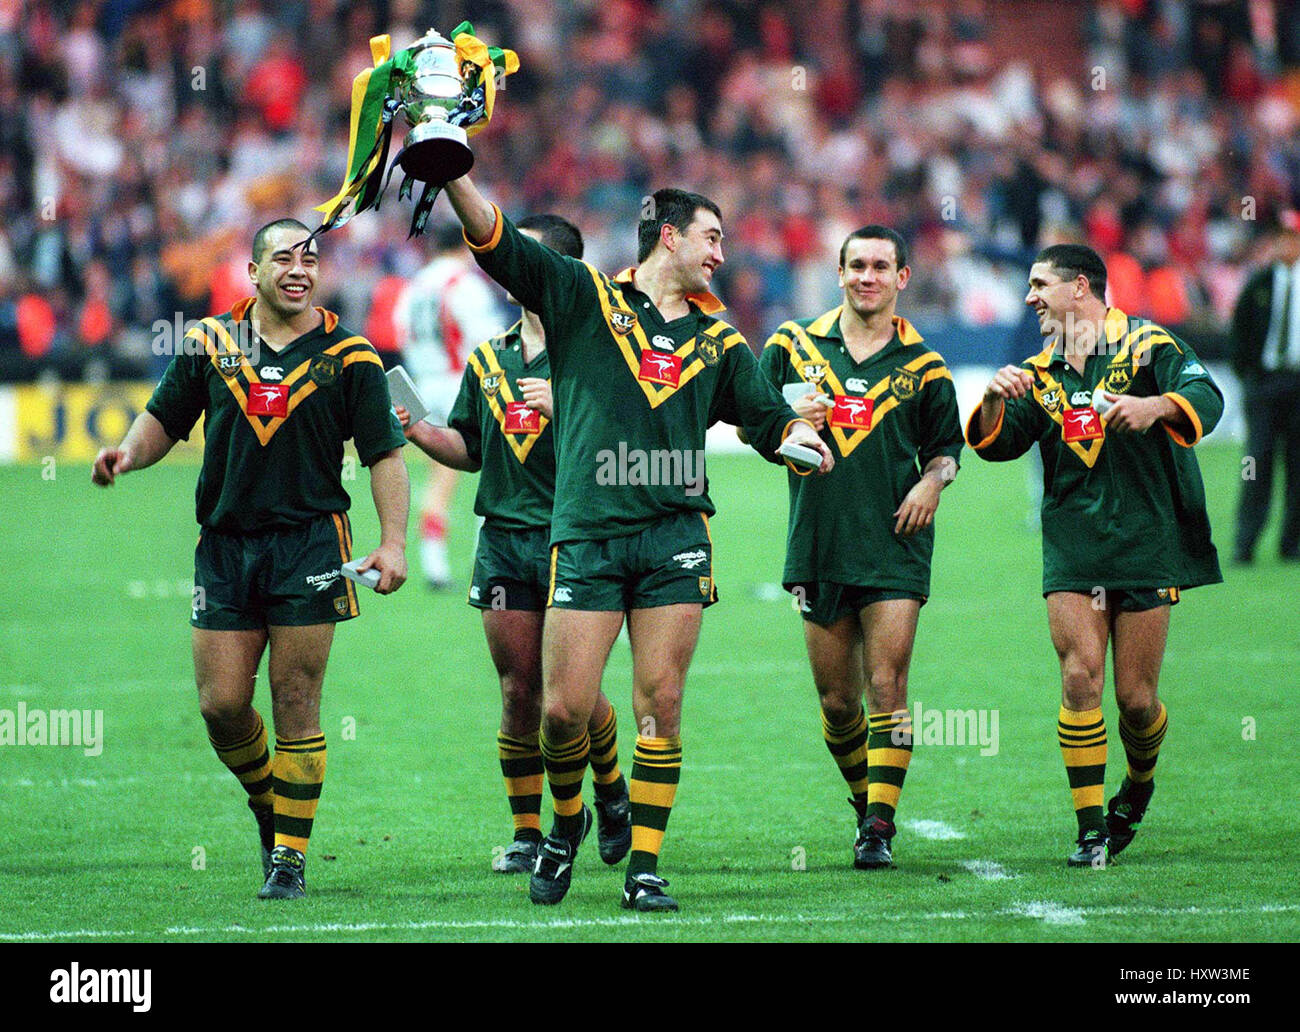 AUSTRALIA CELEBRATE WINNING THE RUGBY LEAGUE WORLD CUP 29 October 1995 Stock Photo